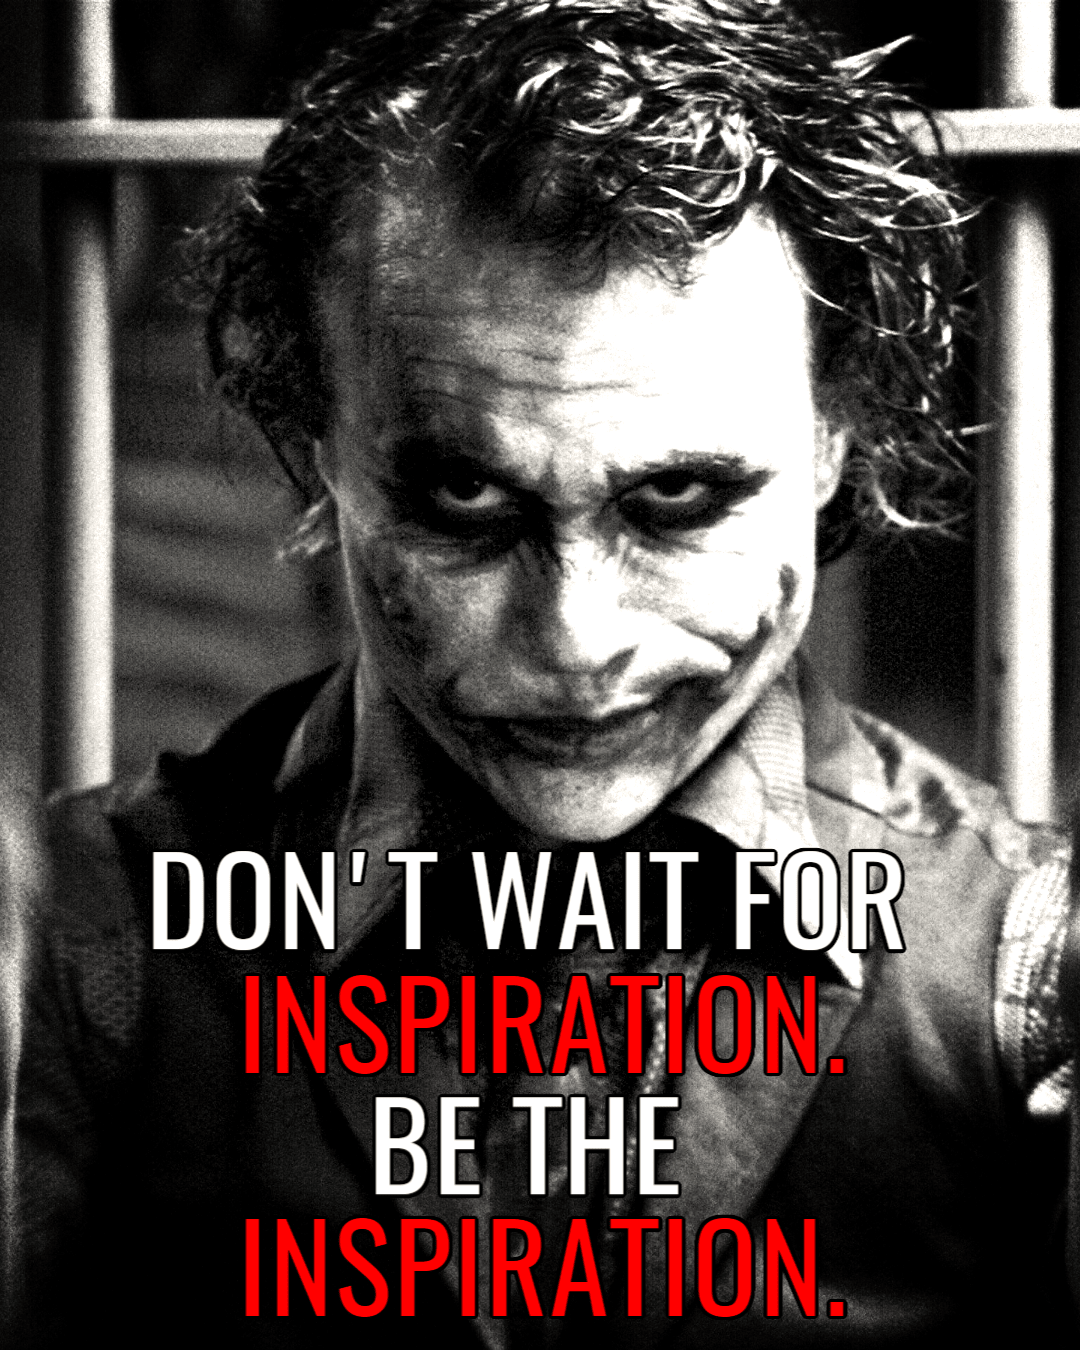 Black,                And,                White,                Joker,                Supervillain,                Poster,                Film,                Photo,                Caption,                Fictional,                Character,                Font,                Road,                 Free Image